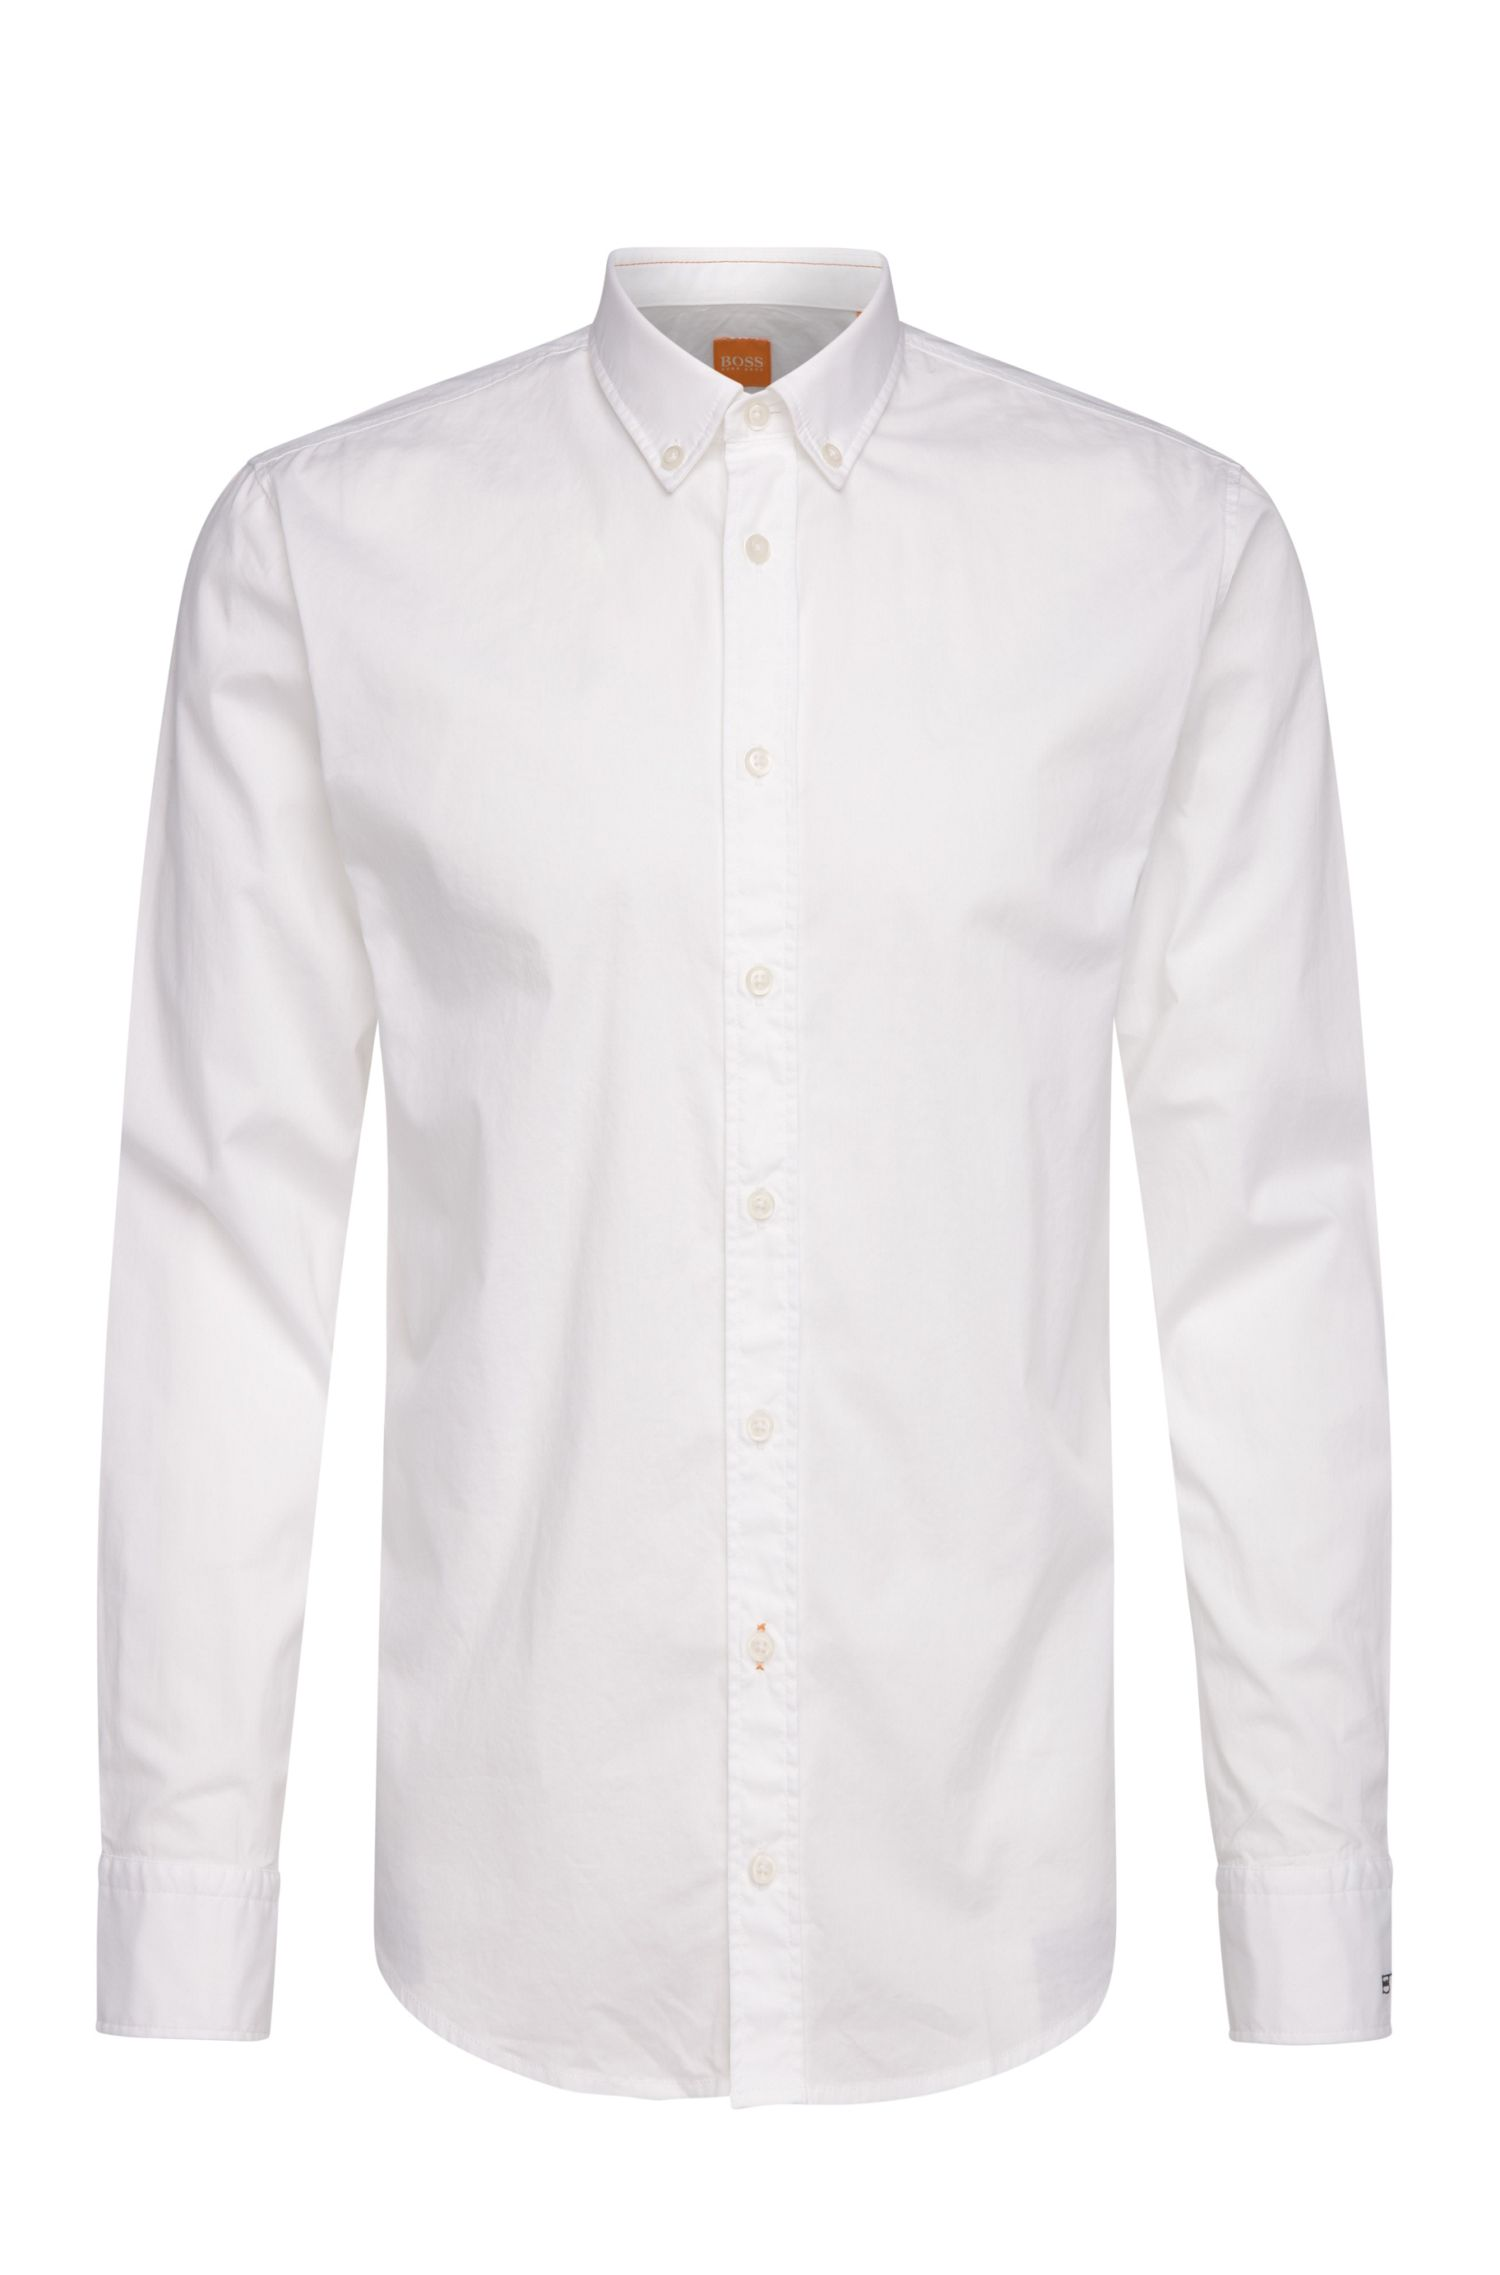 'EdipoE' | Slim Fit, Stretch Cotton Embroidered Button Down Shirt